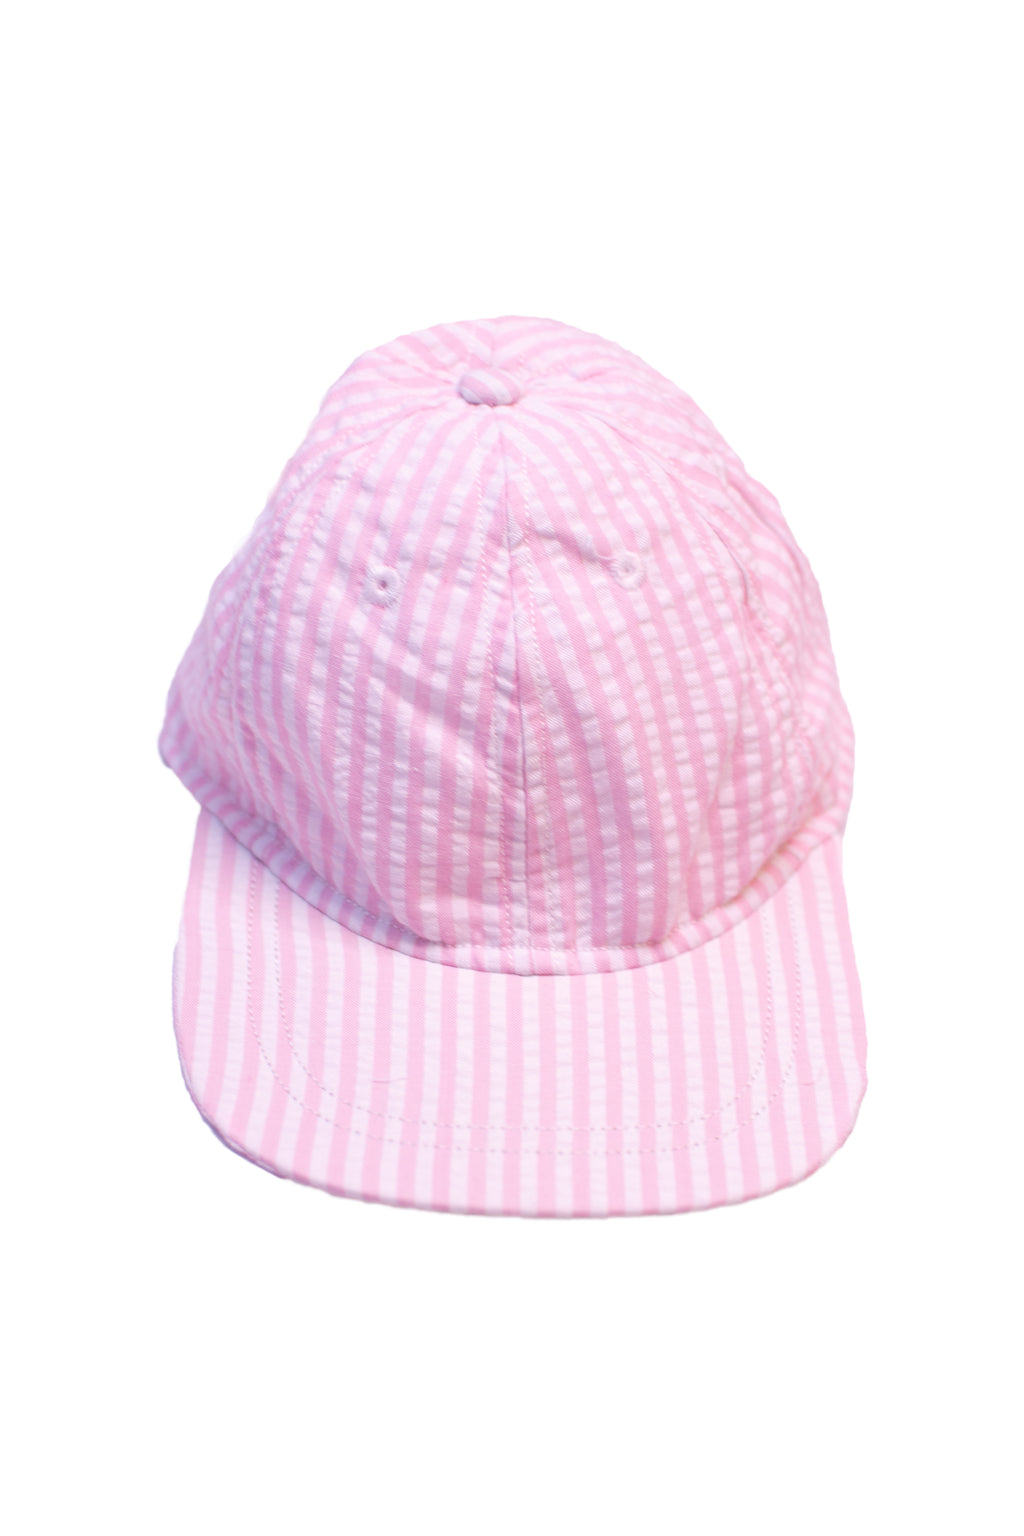 Pink Seersucker Hat with Bow